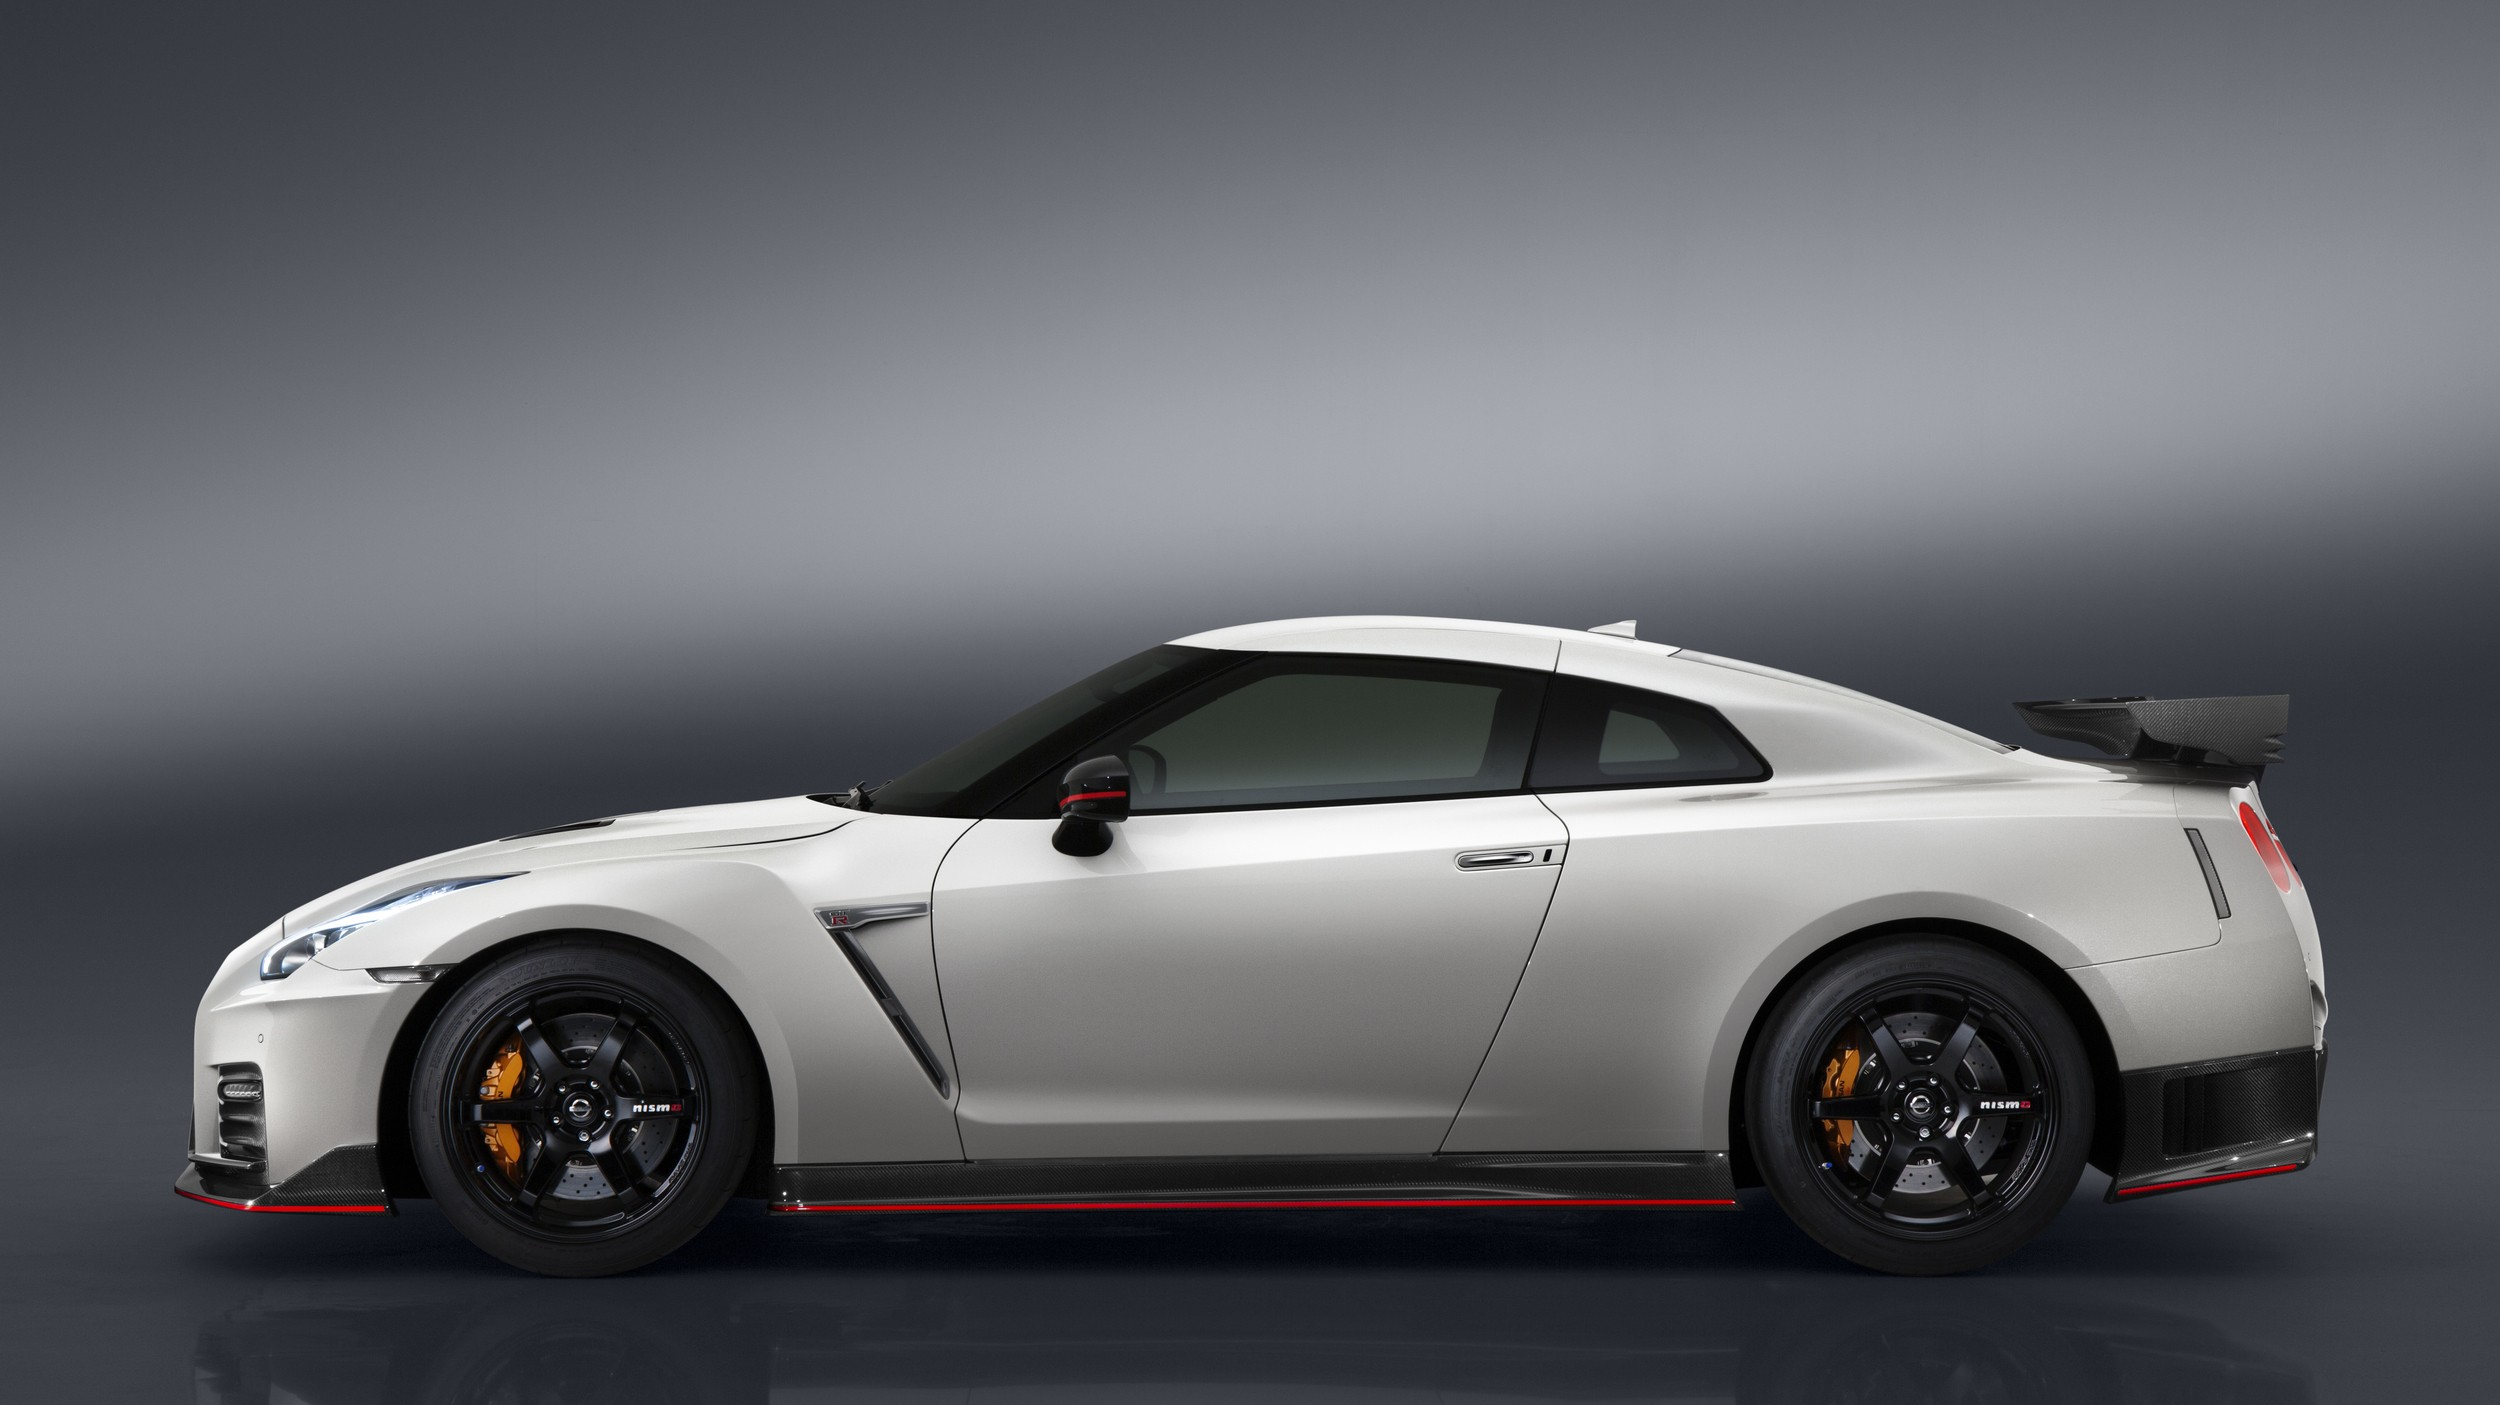 2017 nissan gt r nismo costs 176 585 over 100 000 more than original r35 gt r autoevolution. Black Bedroom Furniture Sets. Home Design Ideas